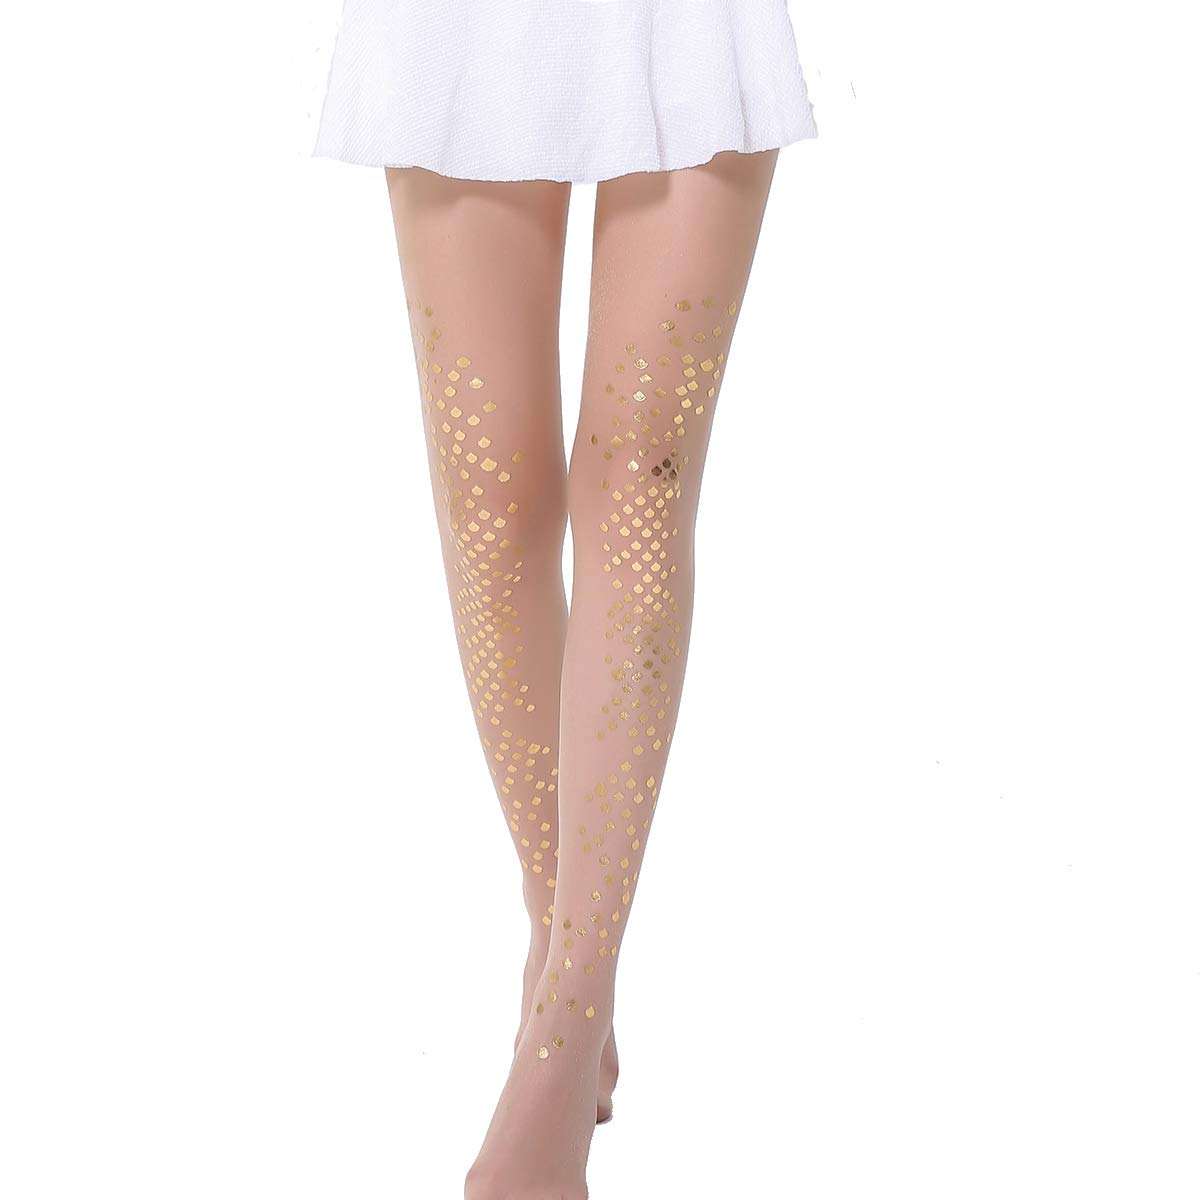 3bb4cc3efd919 Mina Life Thigh High Stockings Women's Sheer Pantyhose Mermaid Stockings  Sparkling Sequin Tights (Gold) at Amazon Women's Clothing store: